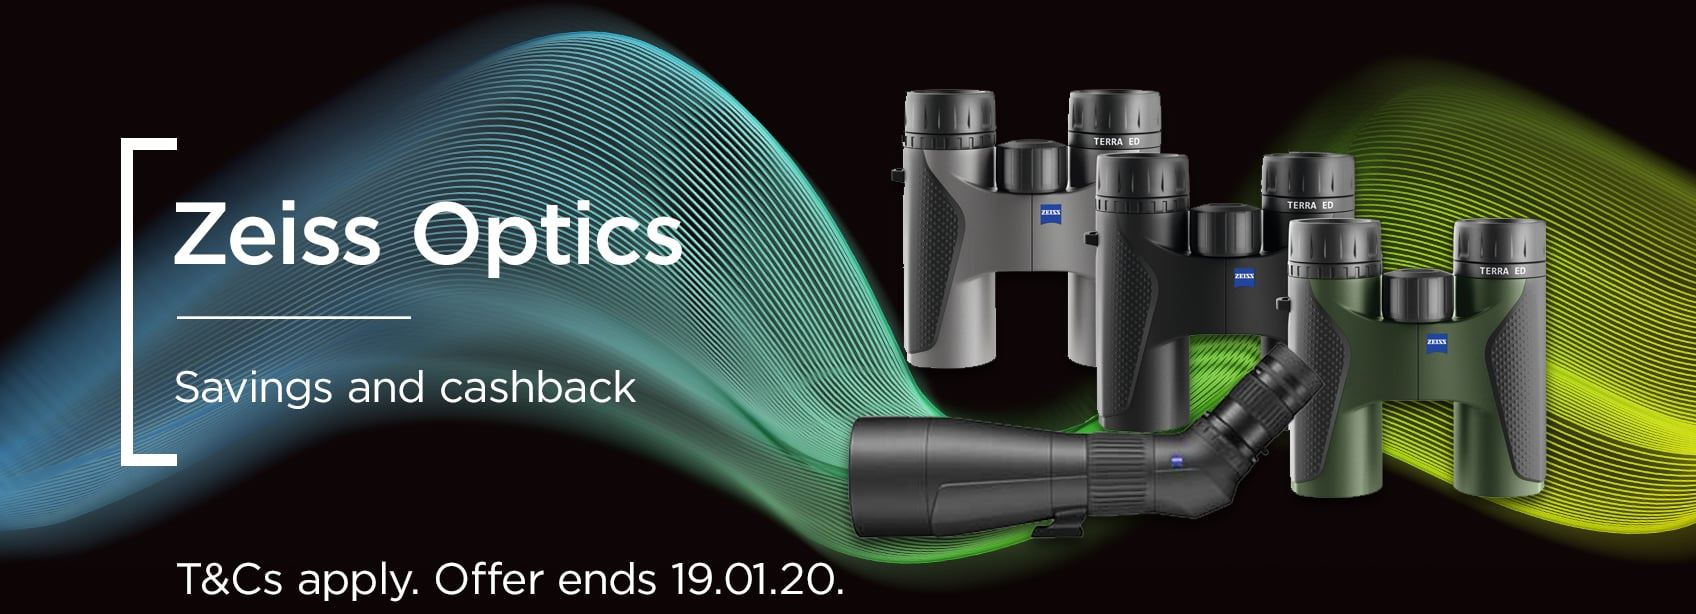 Latest Optics Offers and Promotions